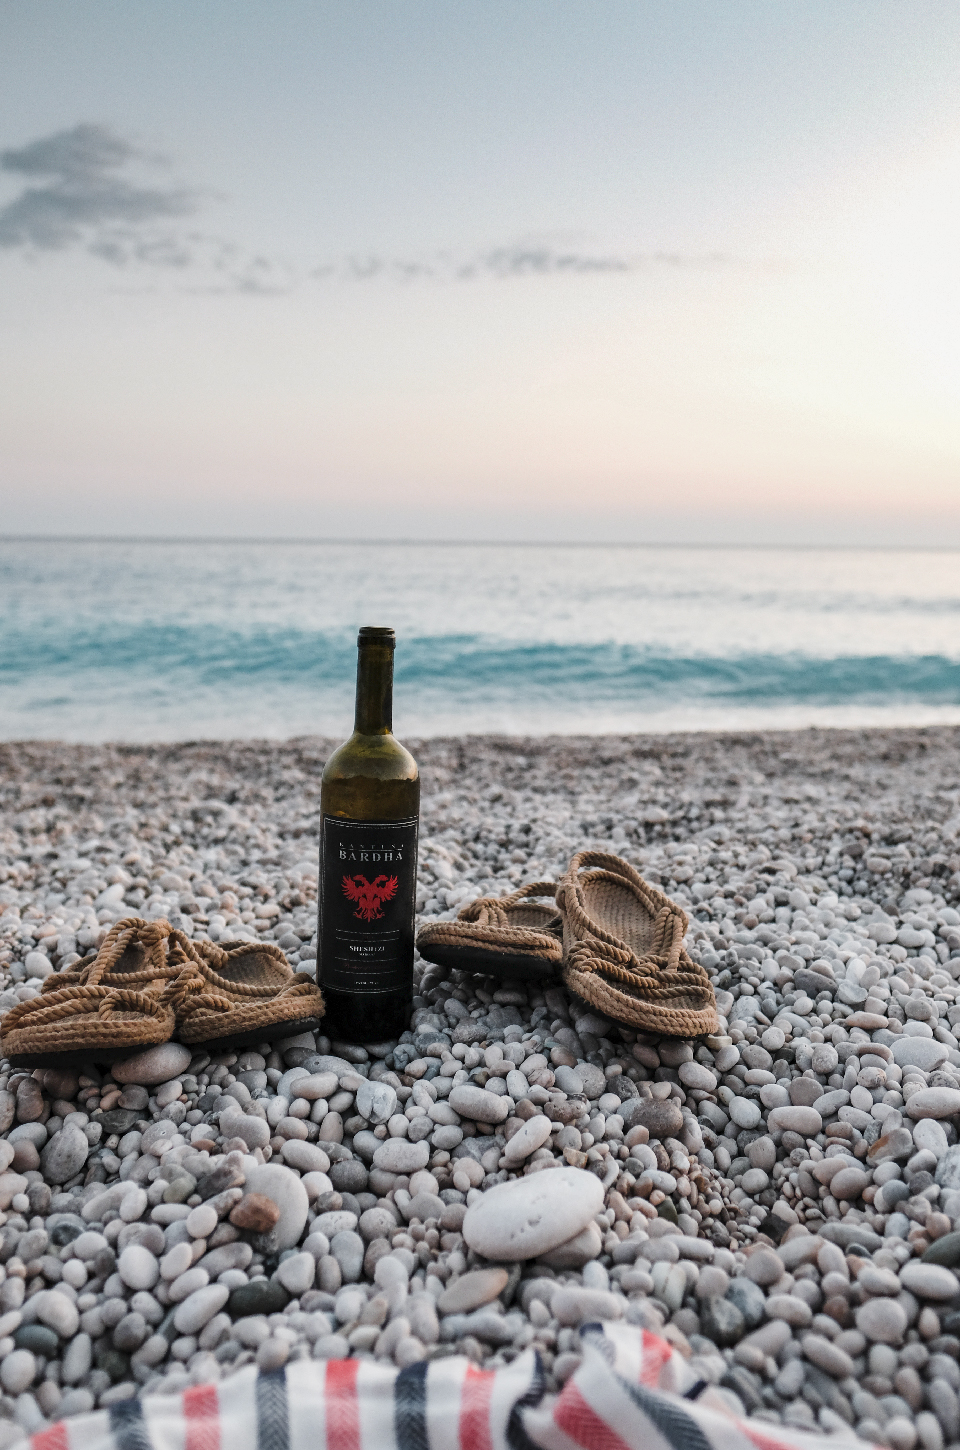 Bottle of wine and sandals infront of the ocean, best beaches in the Riviera, Albania